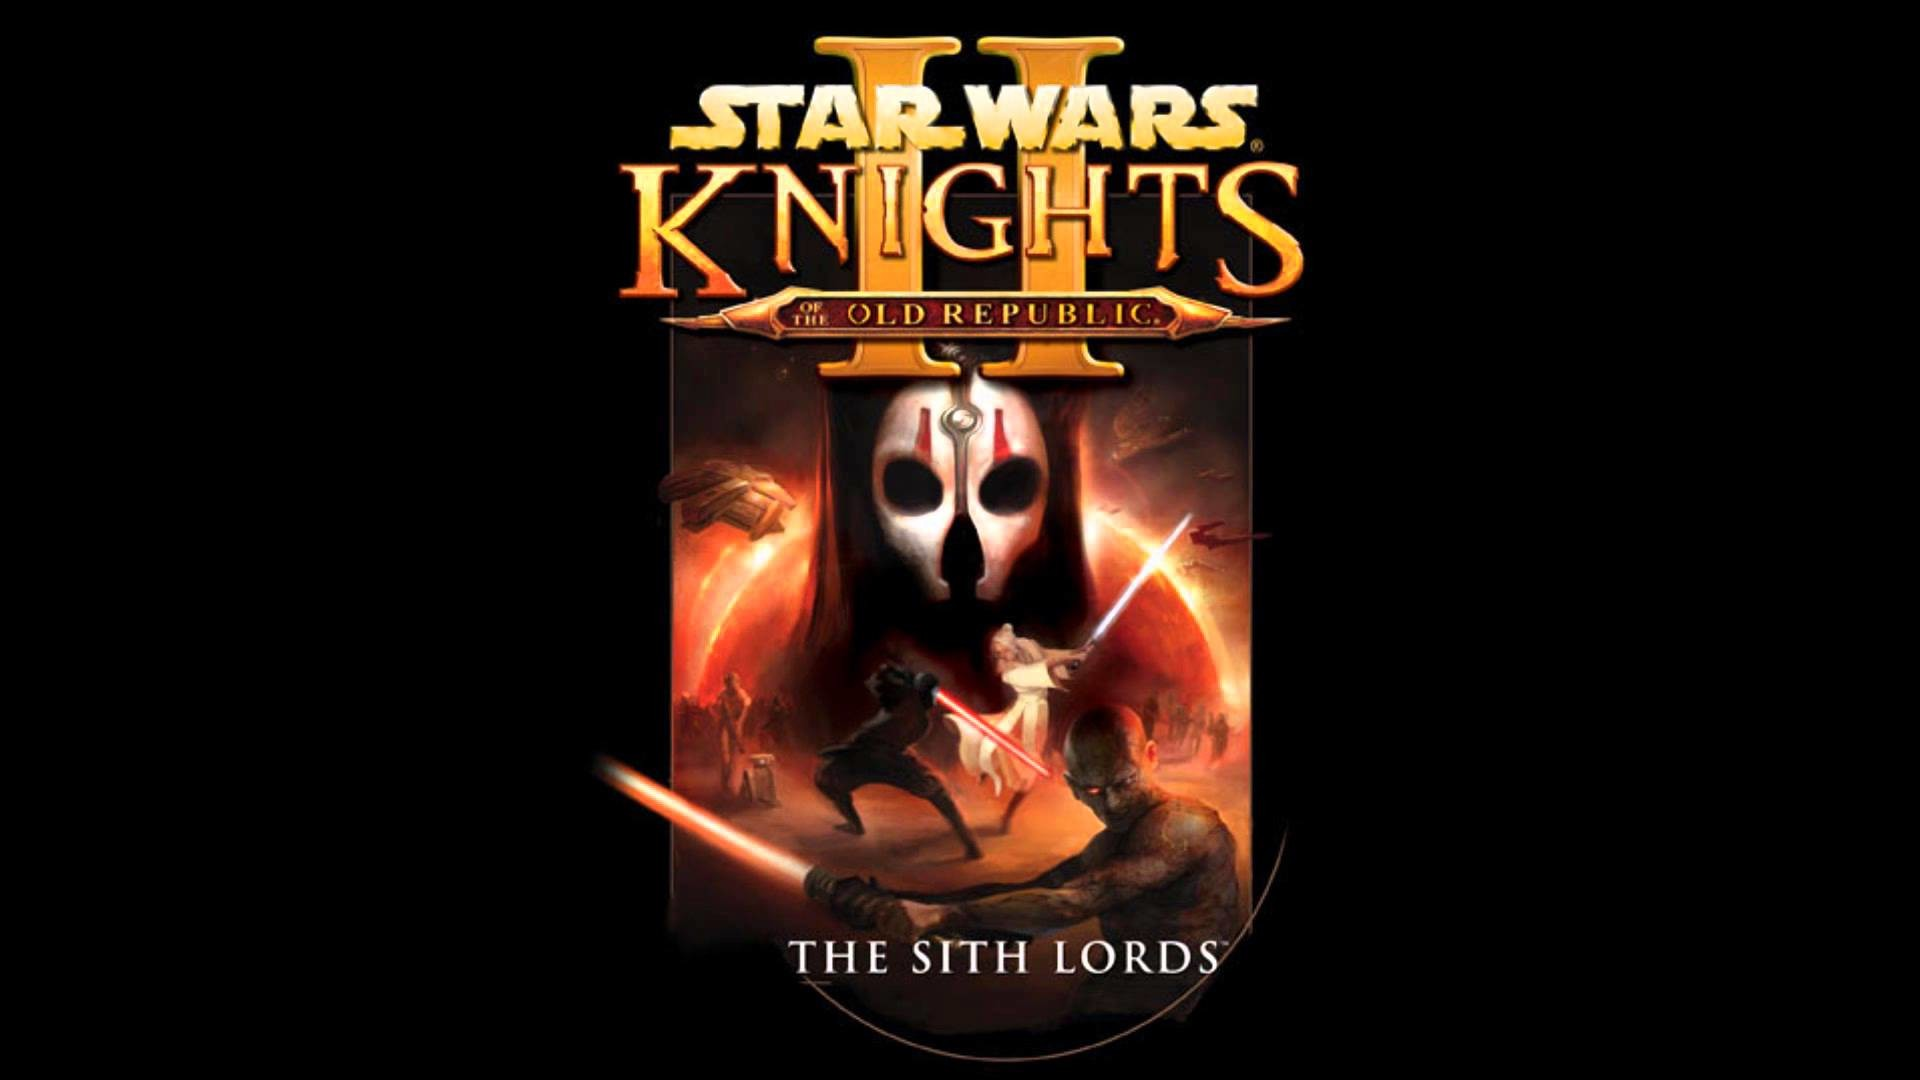 1920x1080 Star Wars: Knights of the Old Republic II soundtrack - Bonus track 05. KotOR  March - YouTube